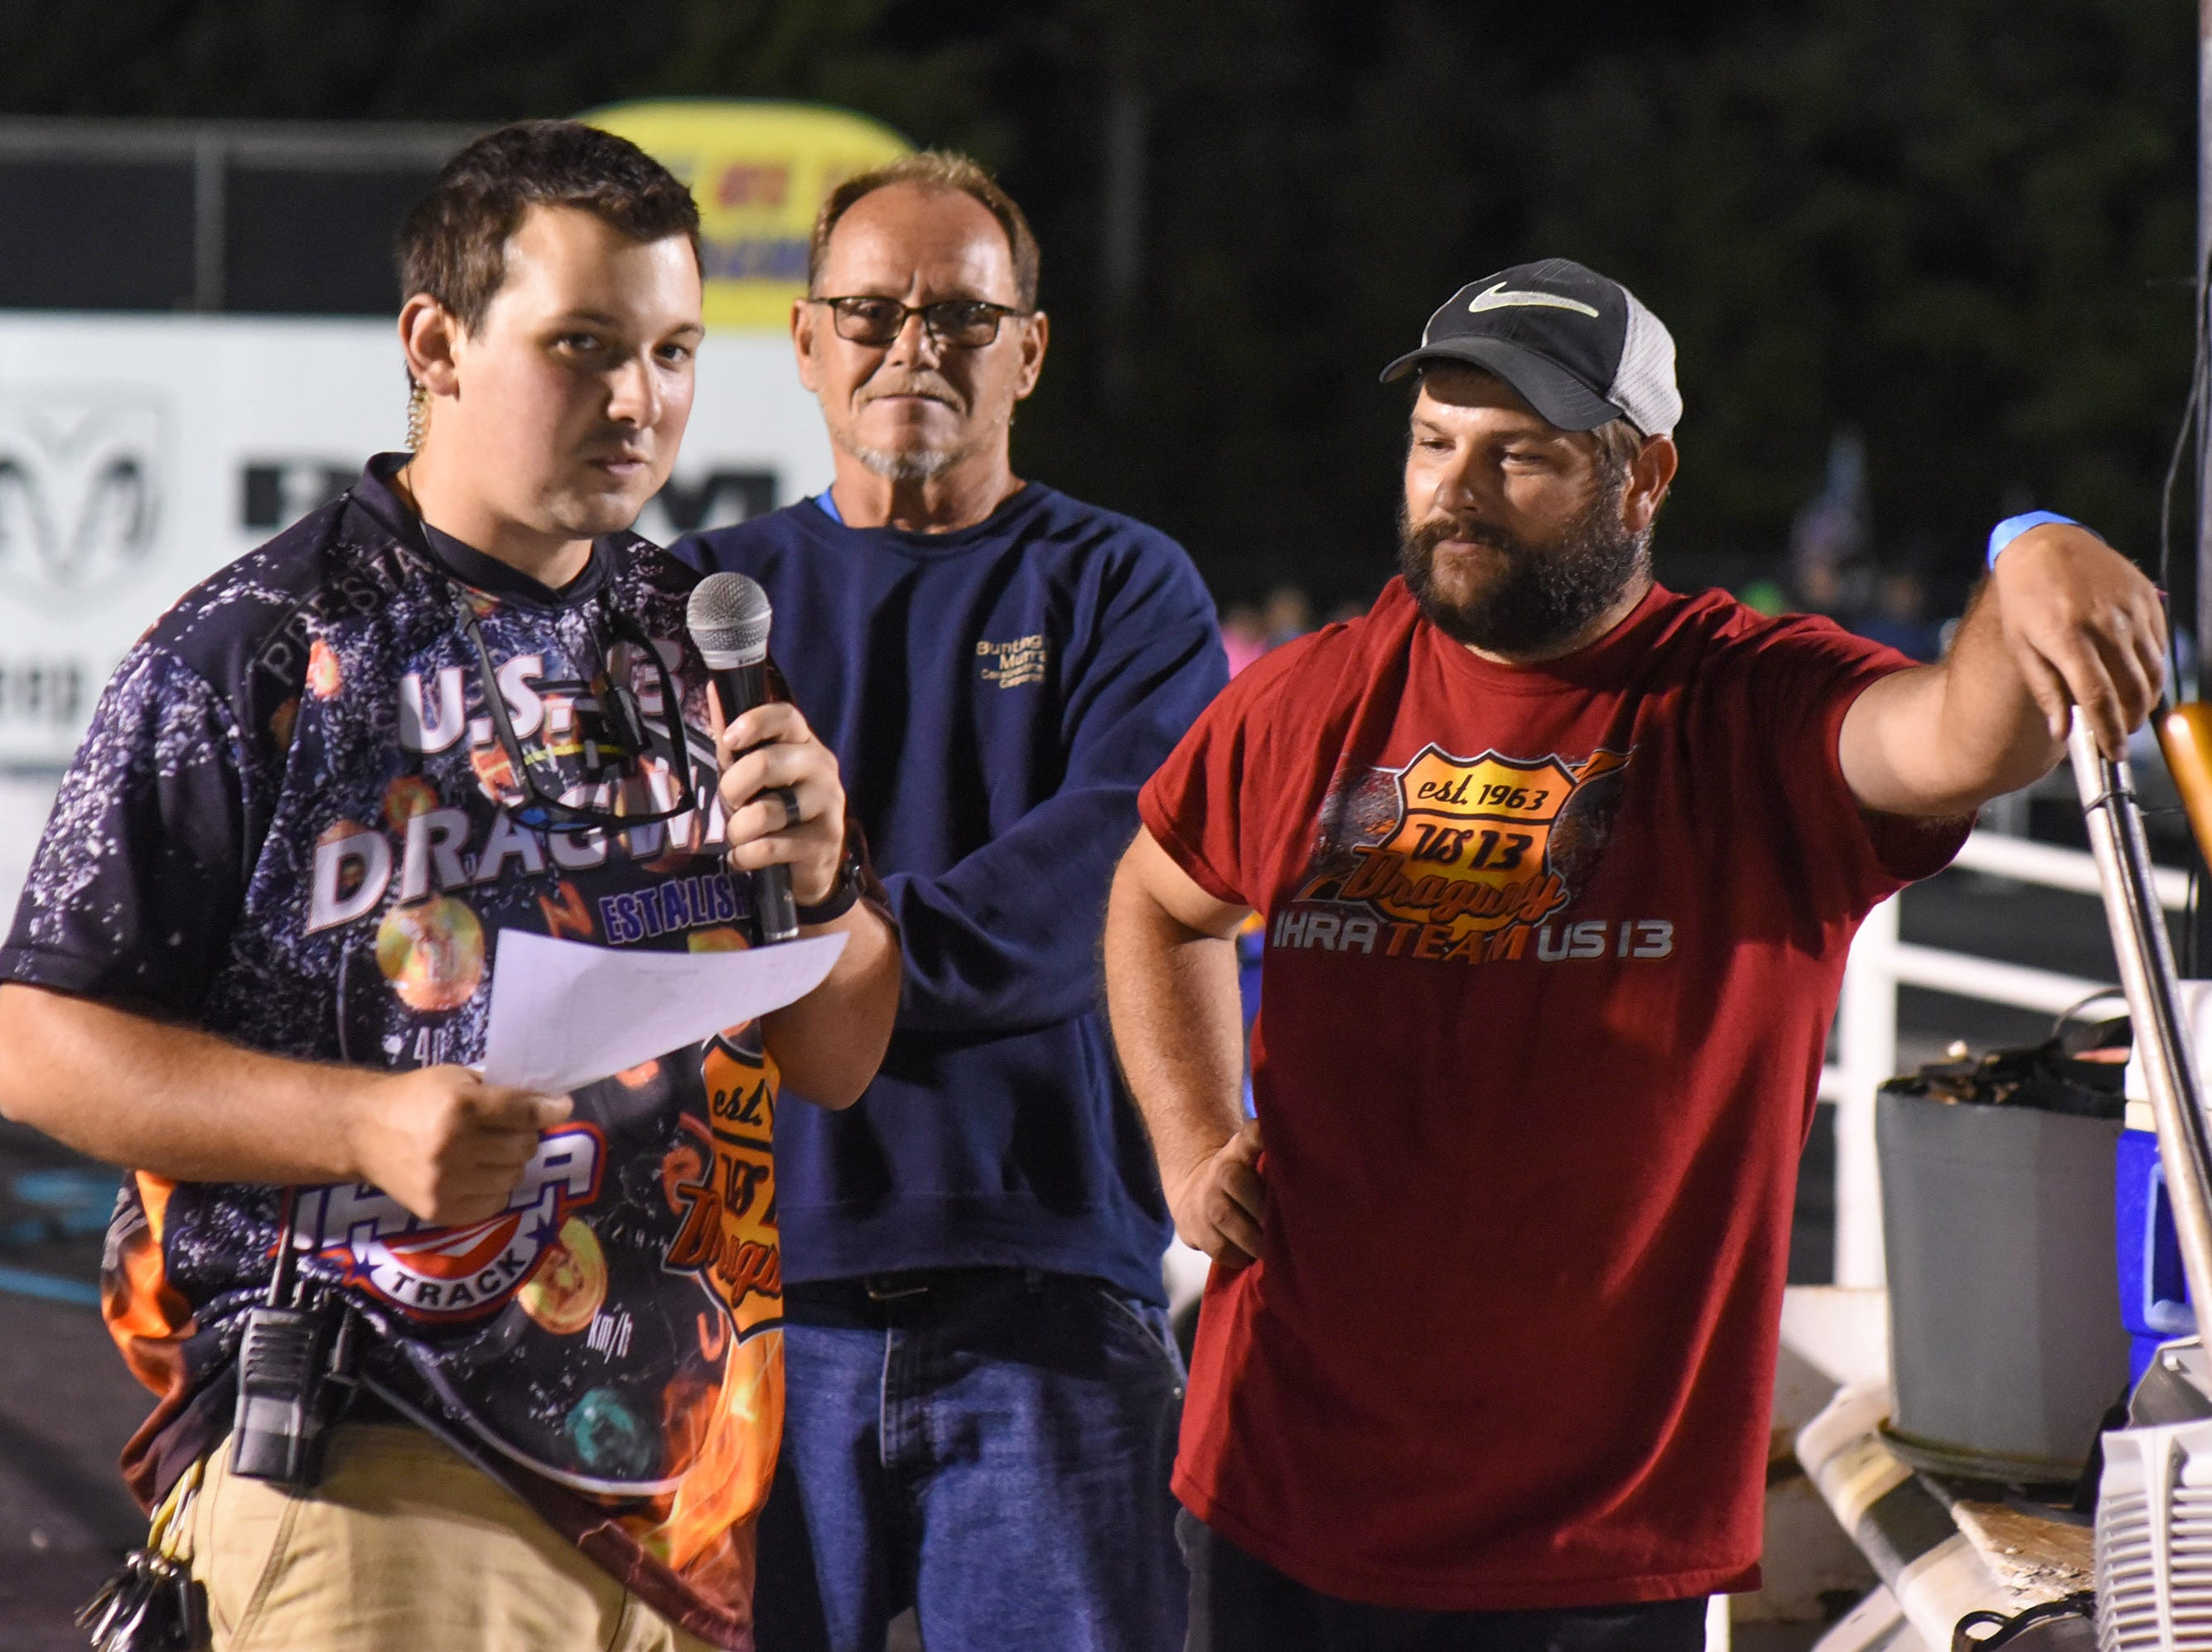 A track announcer ask the crowd for who the winner was at the first Endless Summer Cruisin' 2018 Burnout Contest at the U.S. 13 Dragway in Delmar. Billy McLamb, right, of Mardela Springs was the winner of the contest and $500 sponsored by Special Event Productions Inc. (Photo by Todd Dudek for The Daily Times)